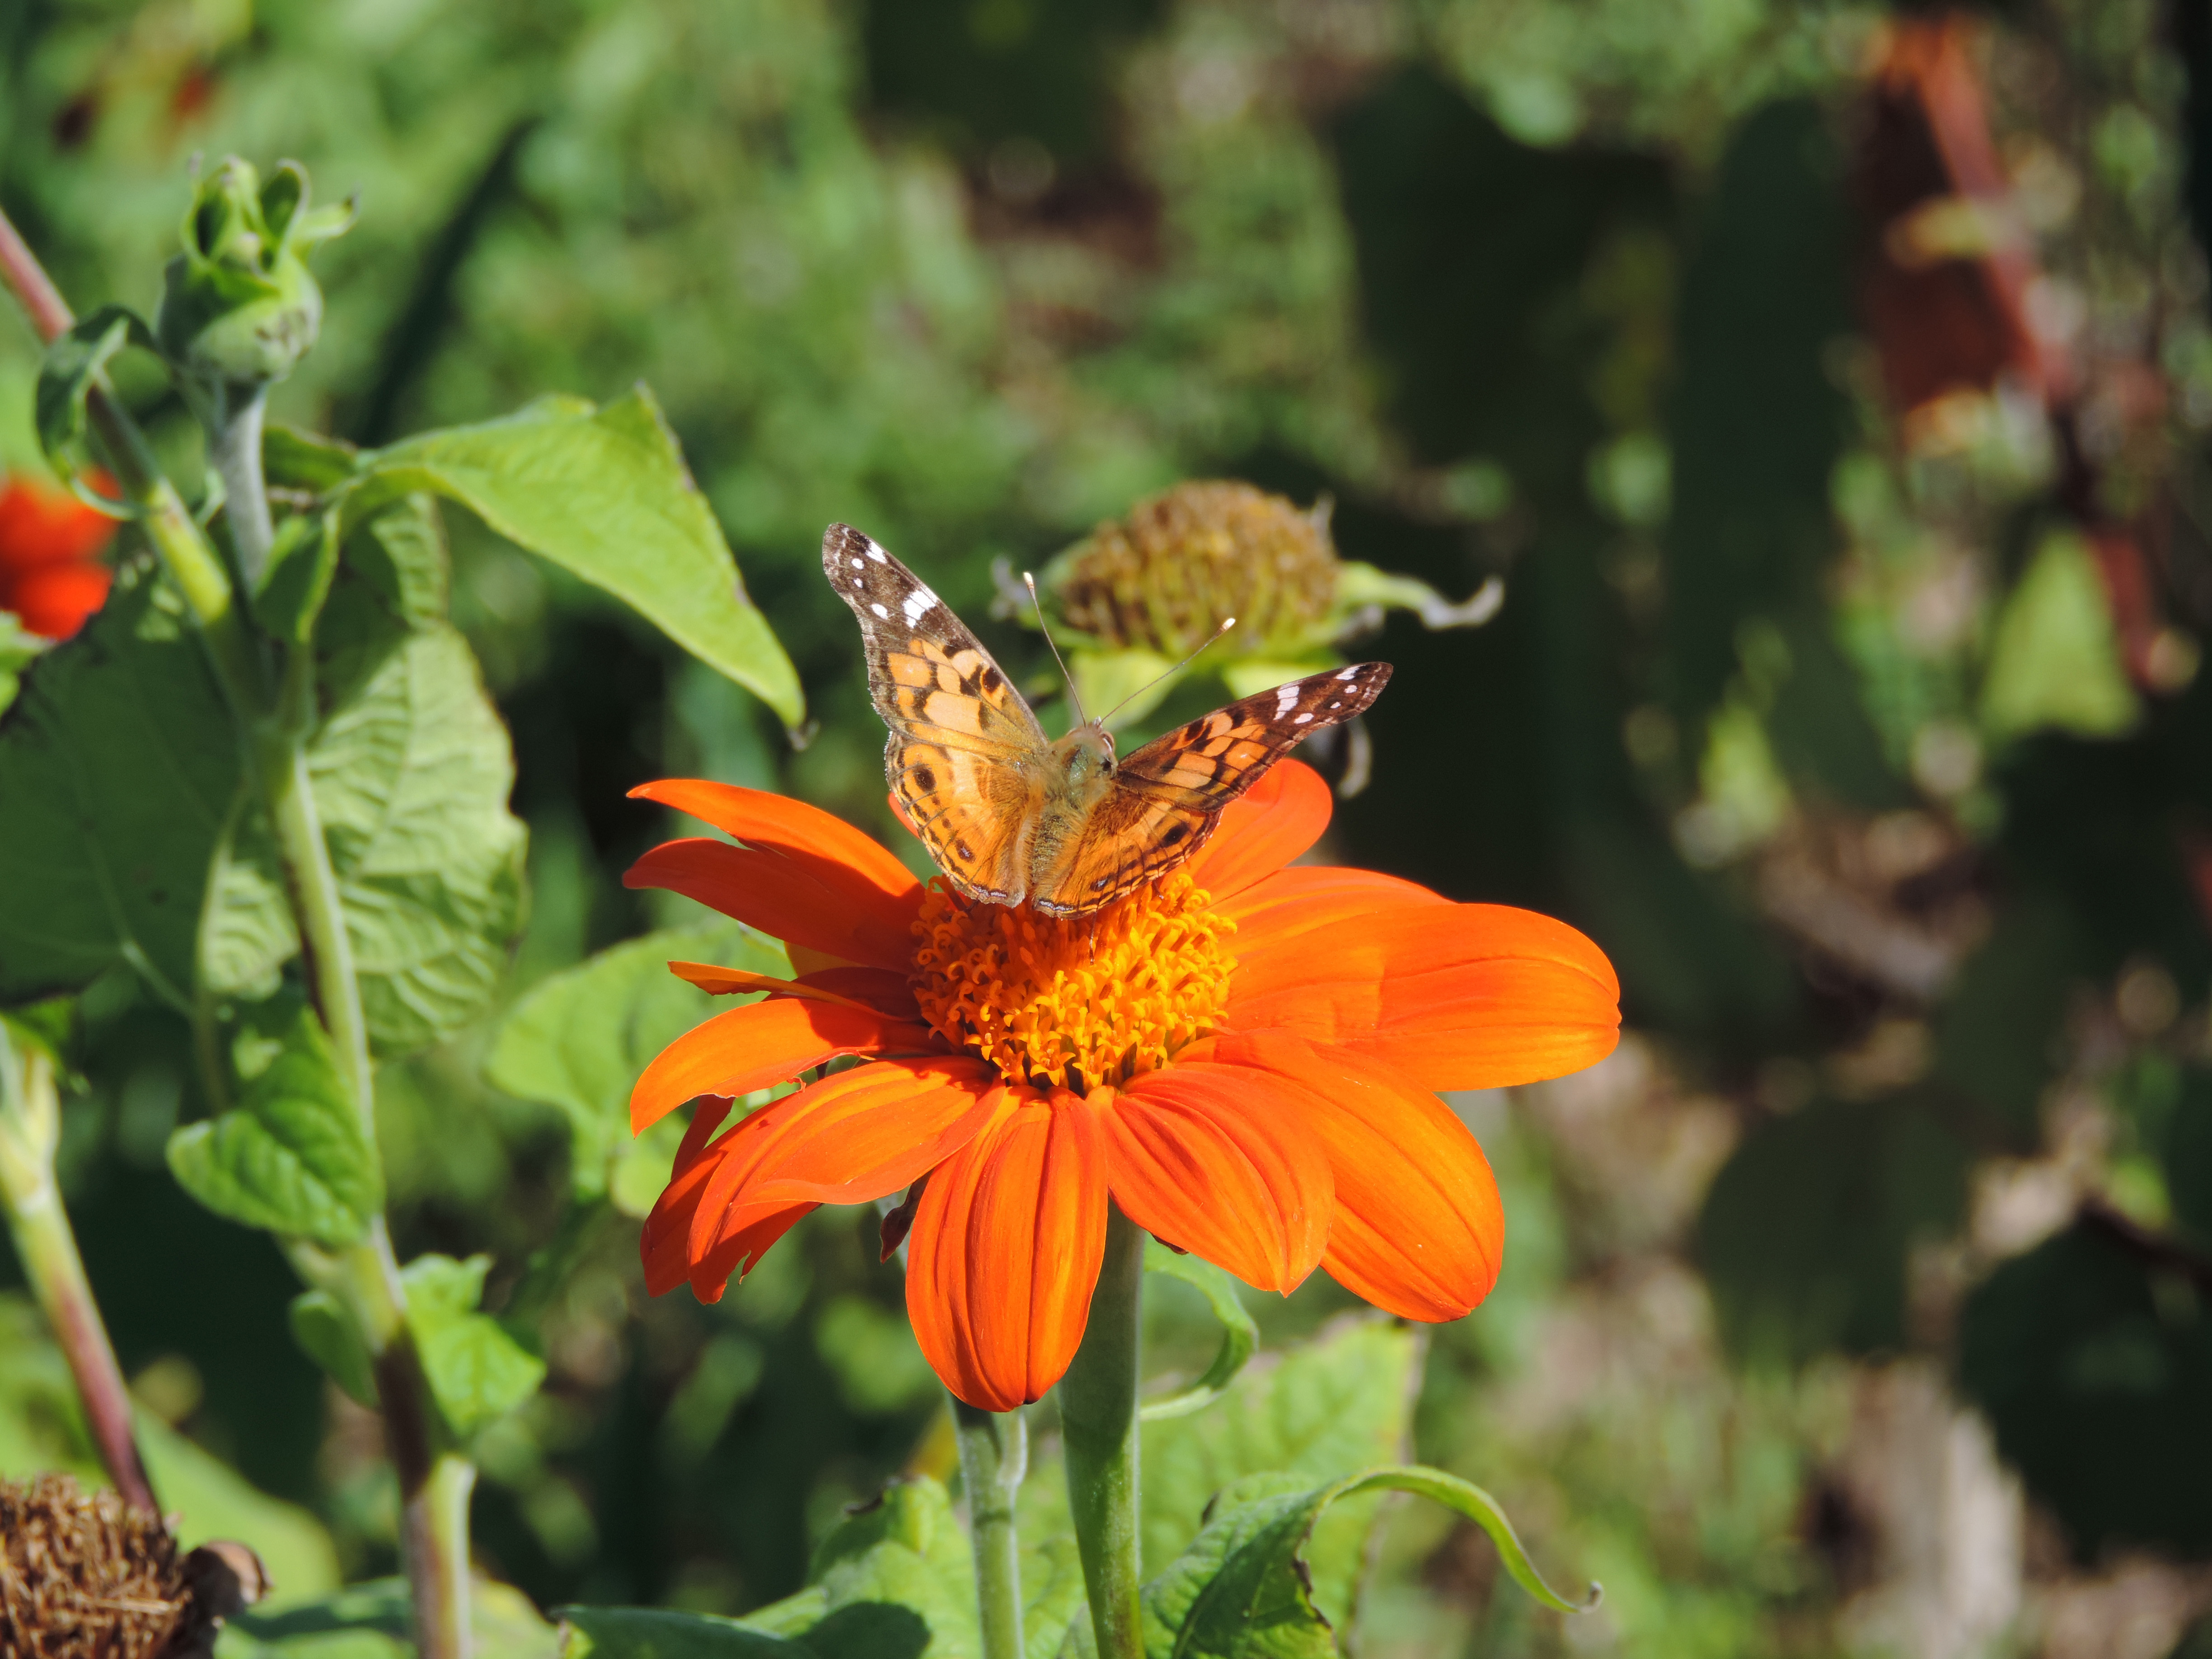 On the first day of fall, an American lady butterfly sits atop a Mexican torch sunflower in the Fermilab Garden Club plot. Photo: Julianna Holden Mohler